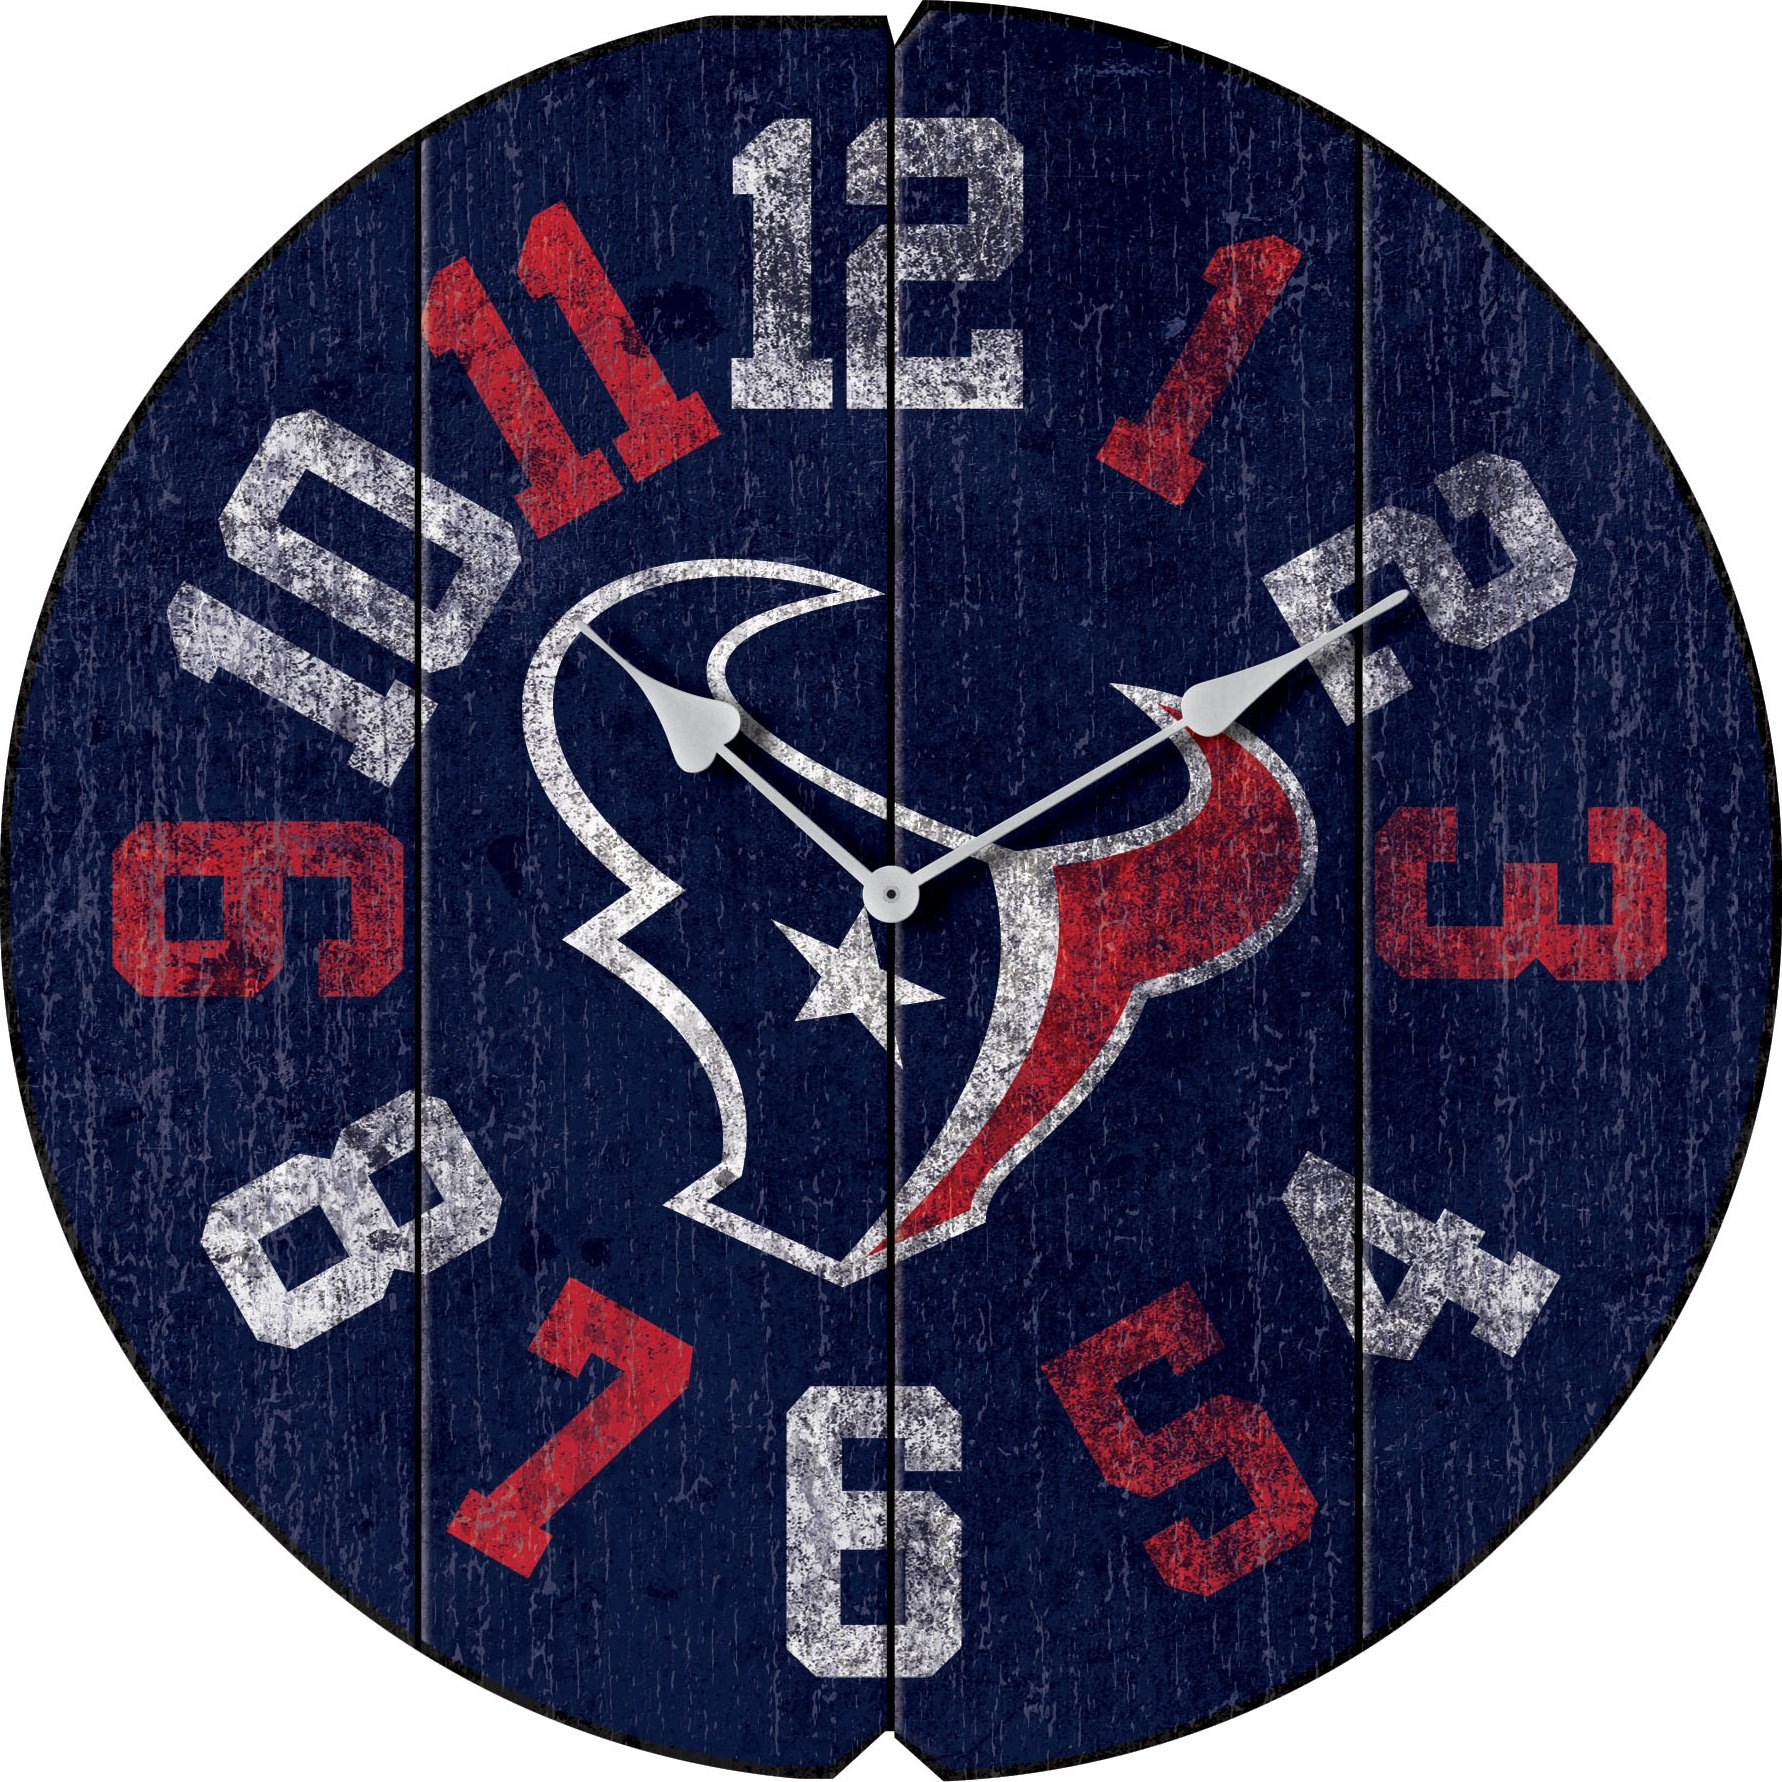 Imperial Officially Licensed NFL Merchandise: Vintage Round Clock, Houston Texans by Imperial